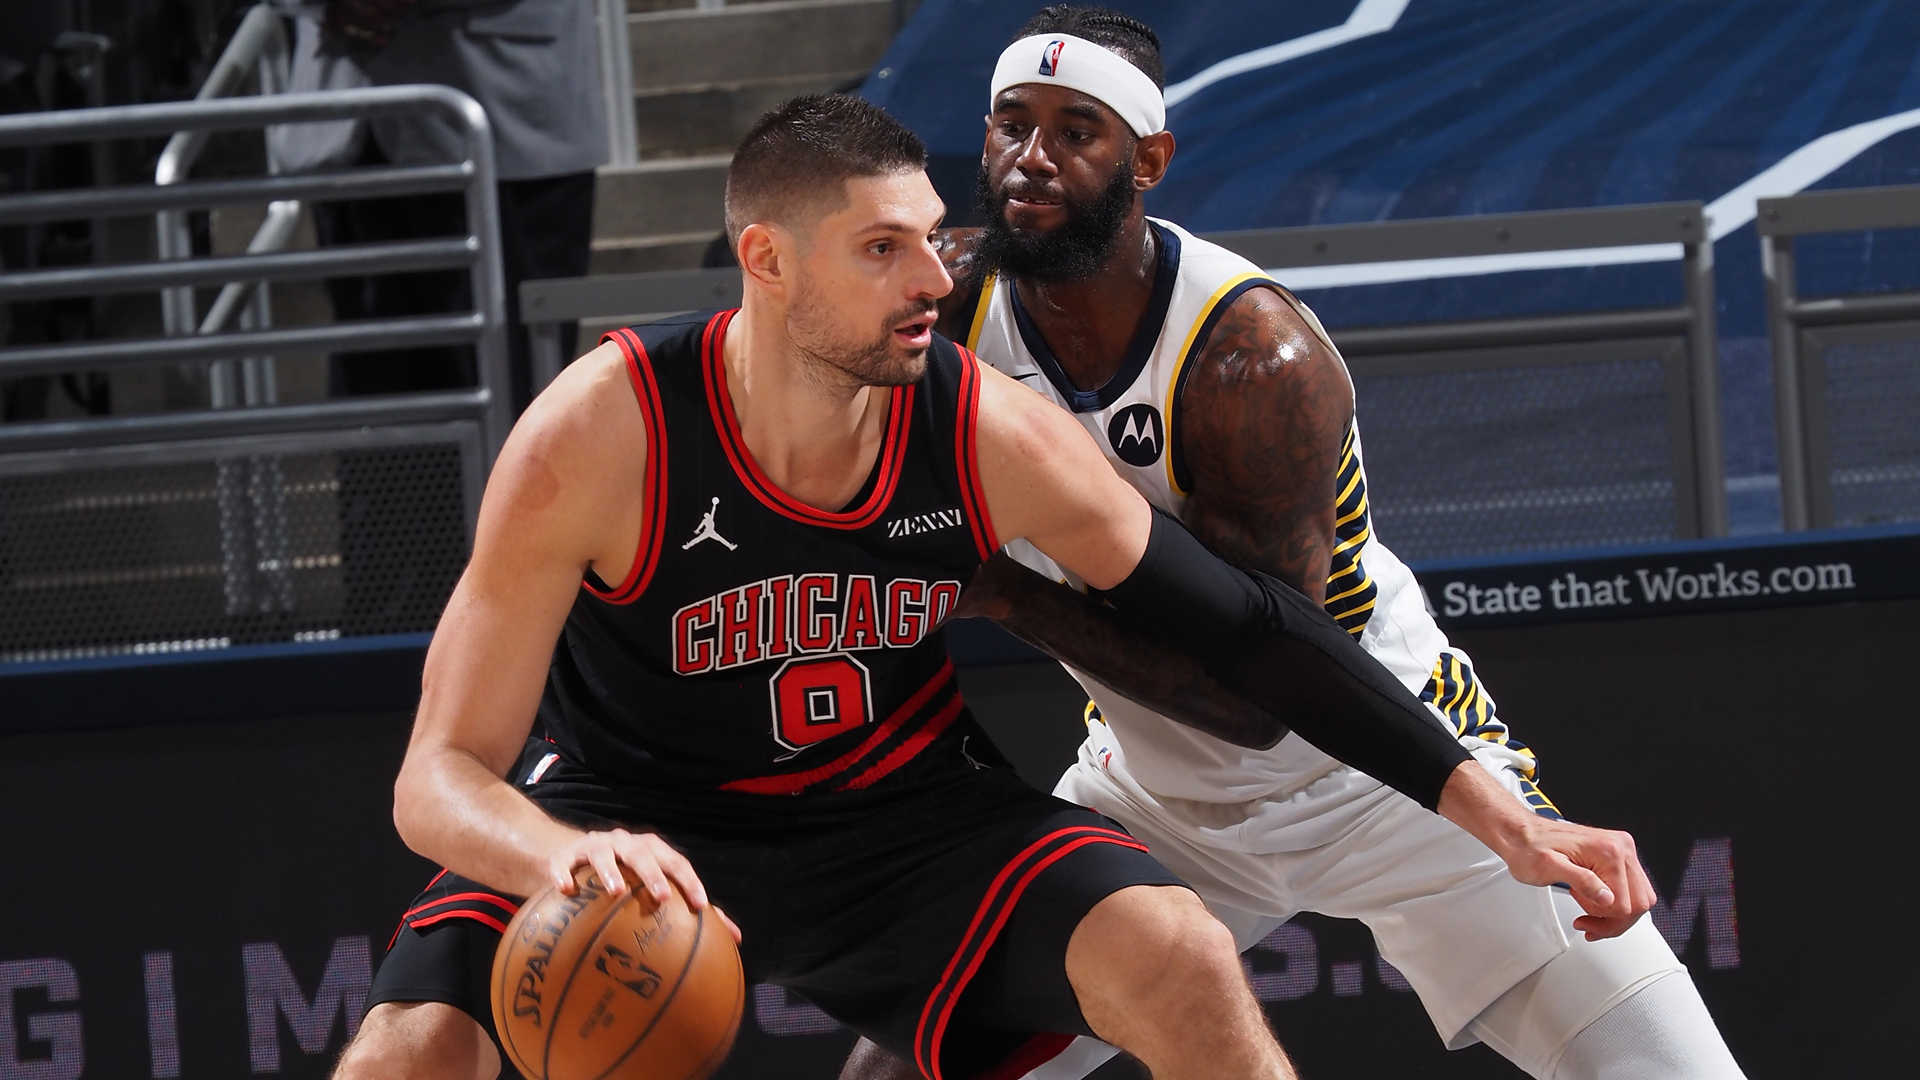 Game Recap: Bulls 113, Pacers 97